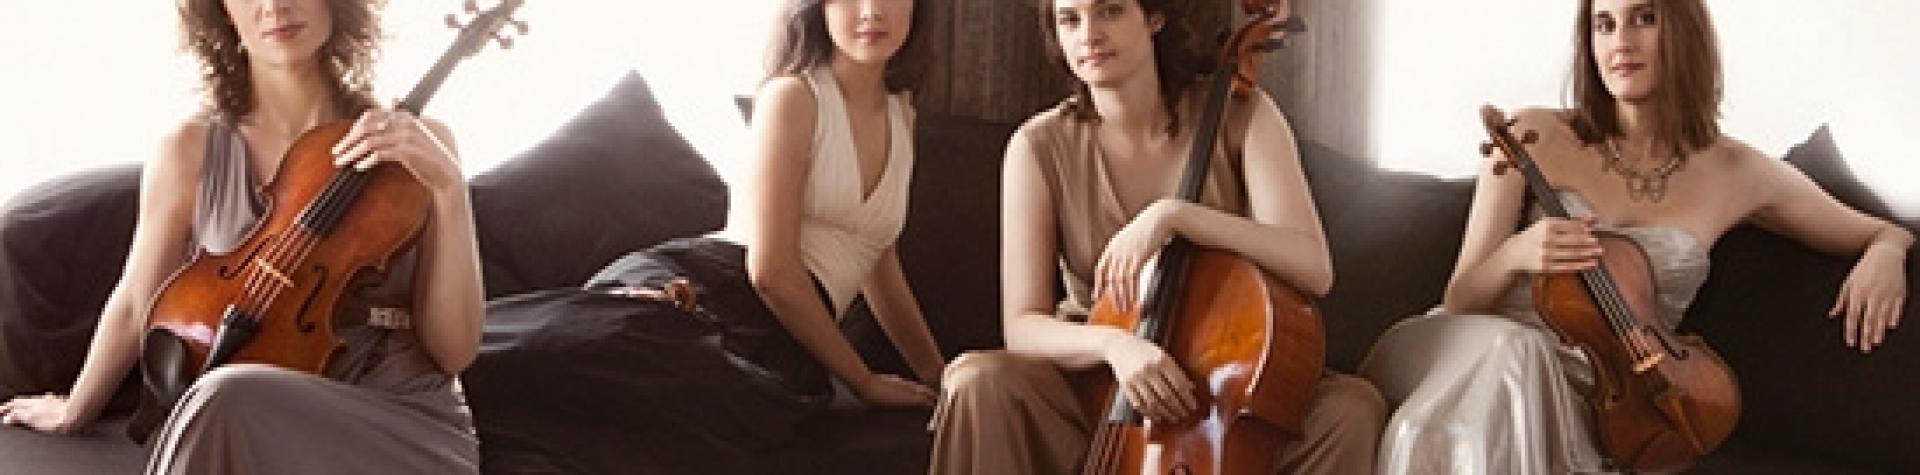 Cecilia String Quartet - 21C Music Festival Shines Spotlight on Canadian Artists